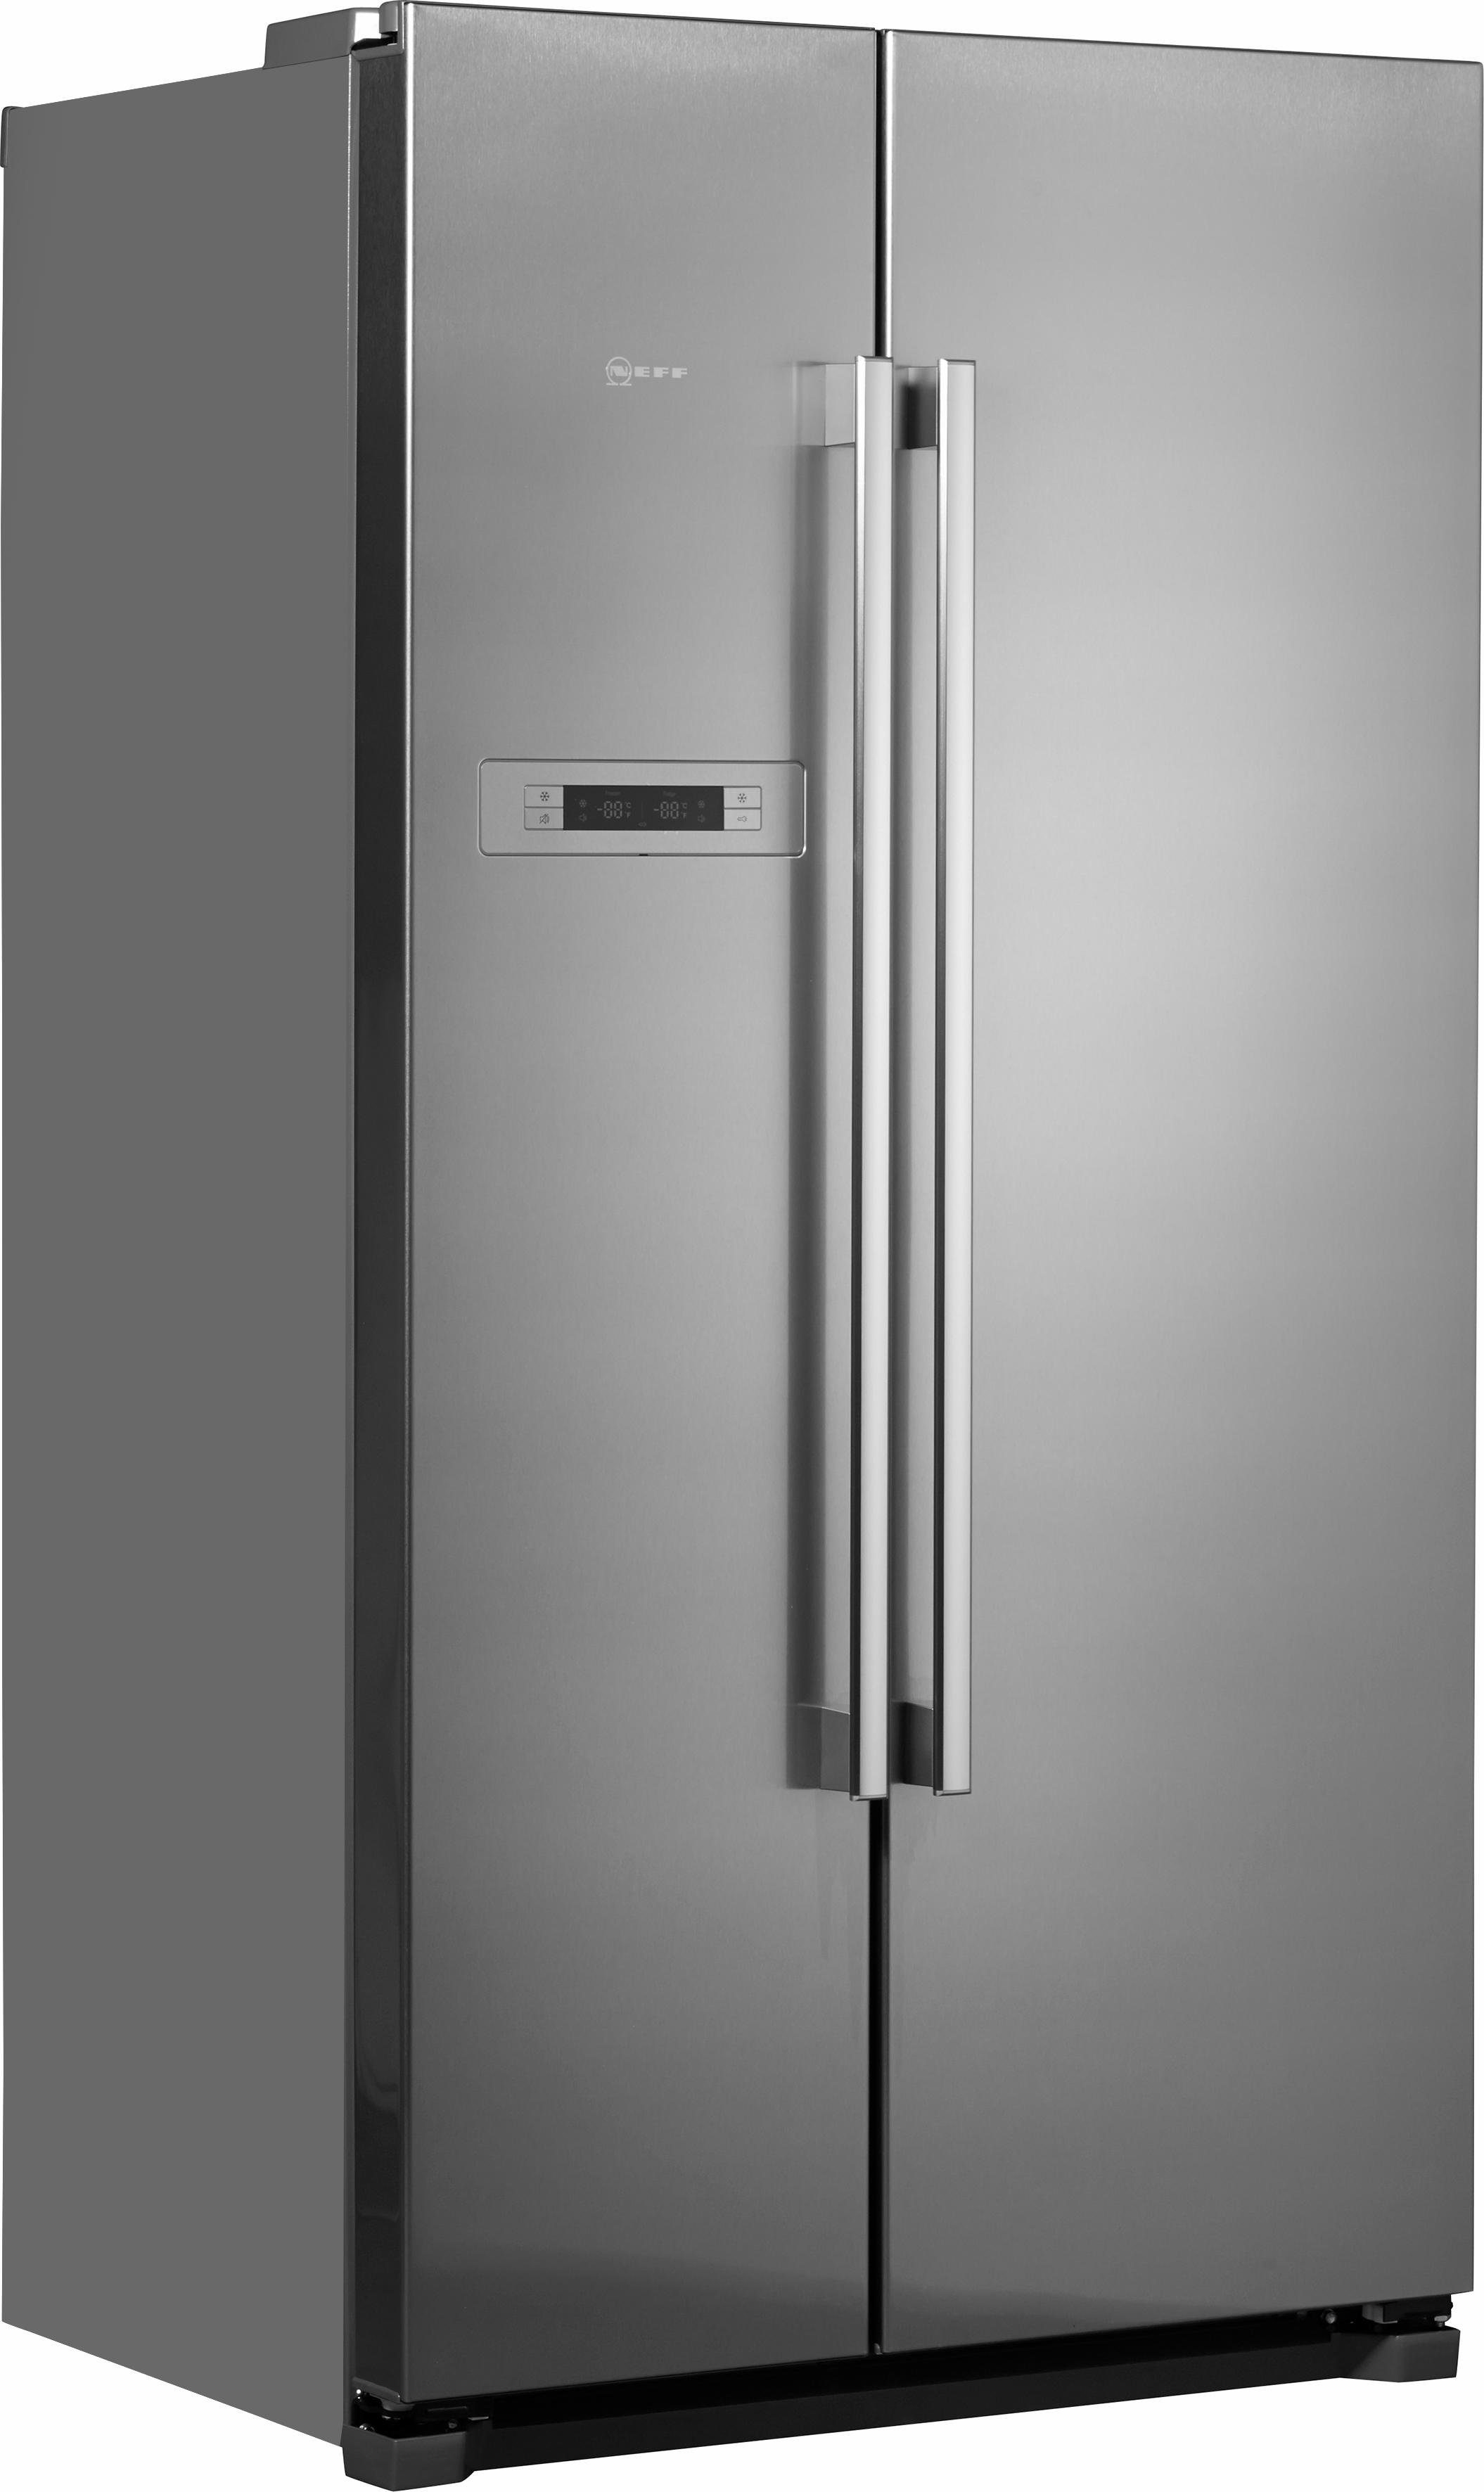 NEFF Side-by-Side KSA778, 177 cm hoch, 91 cm breit